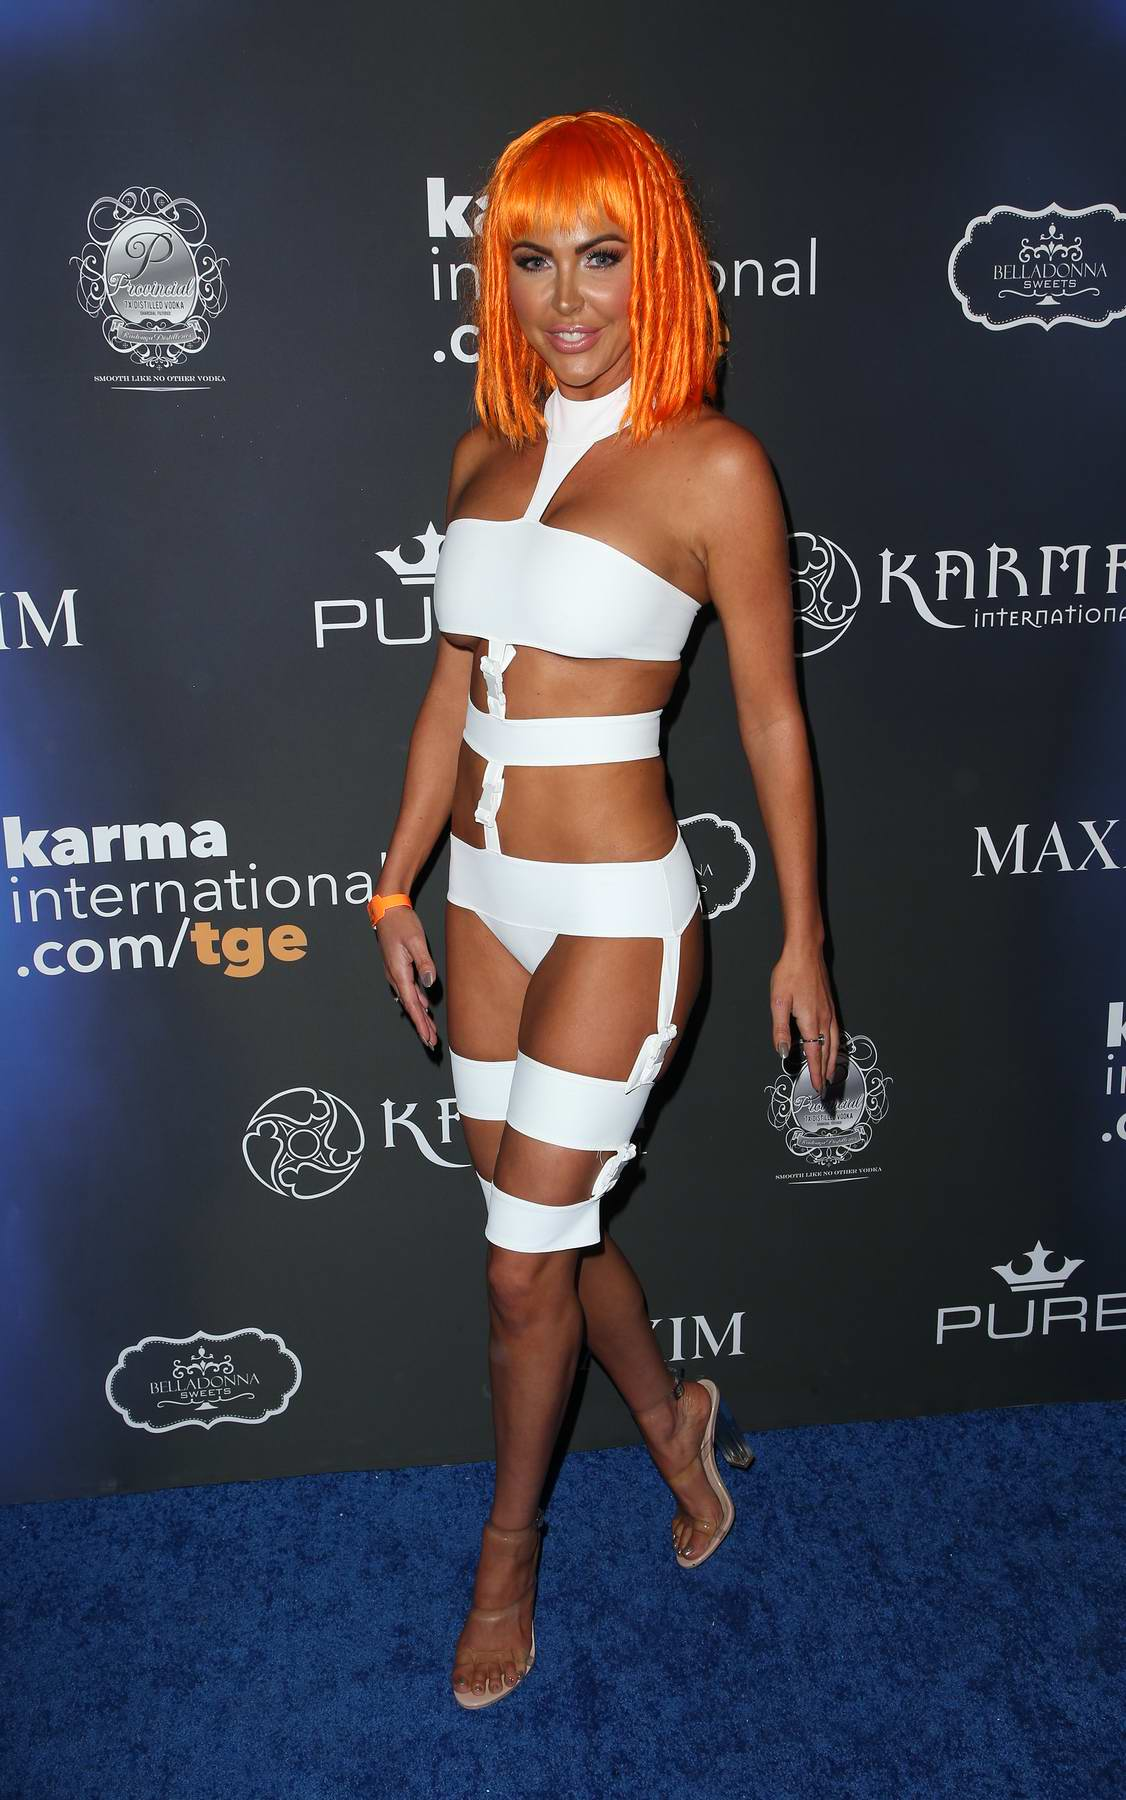 Jessica Cribbon at the 2017 Maxim Halloween party in Los Angeles